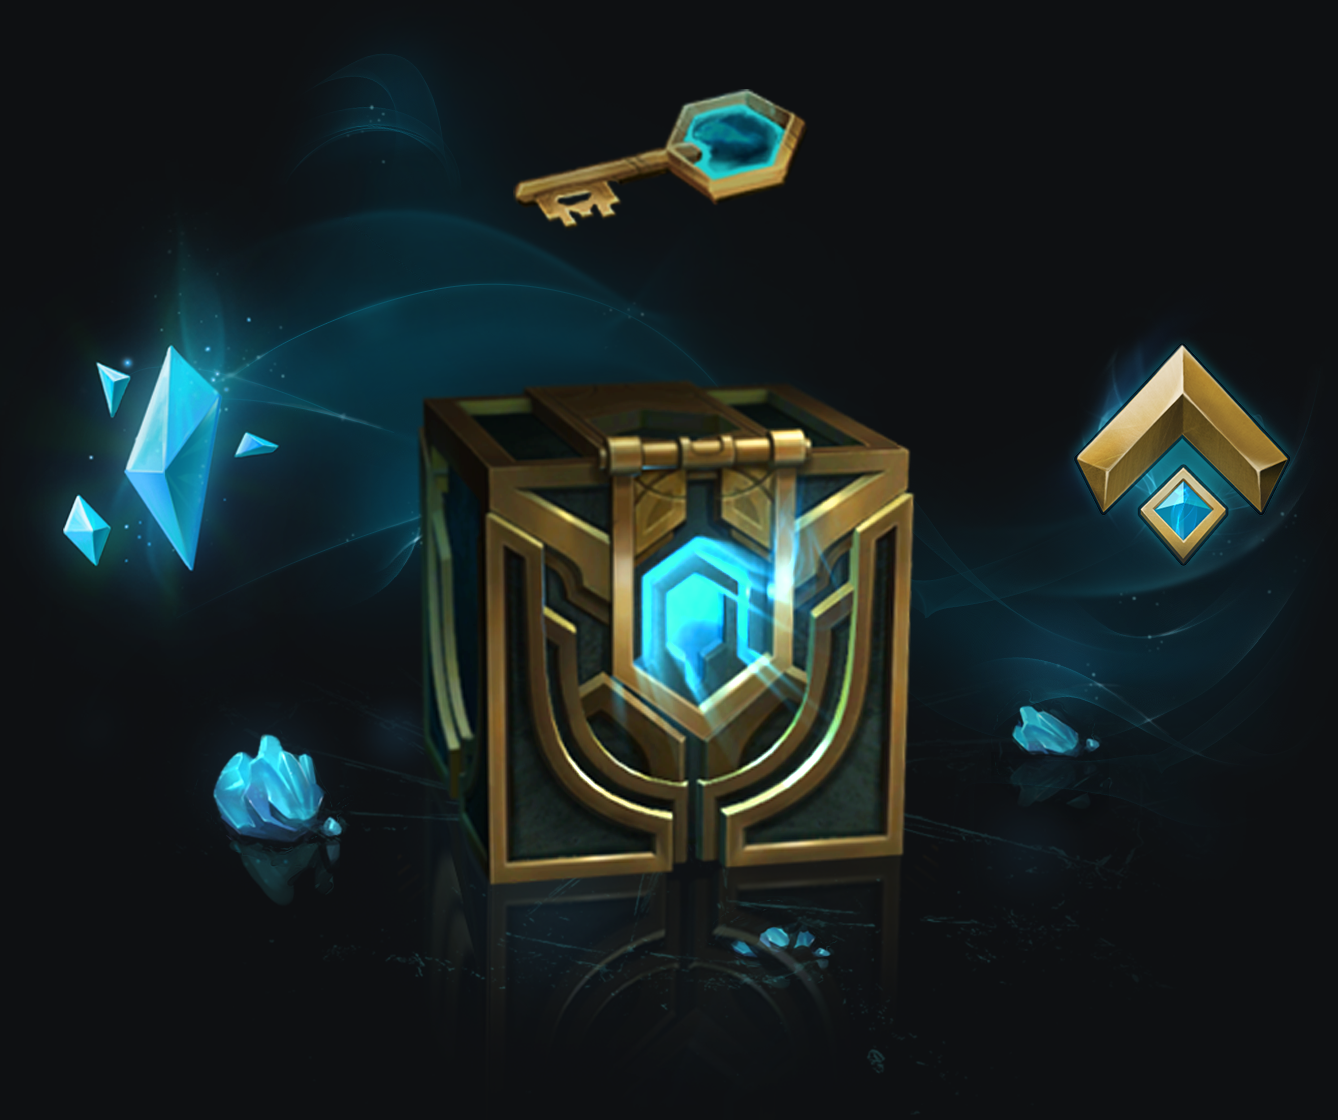 cannot login to league of legends